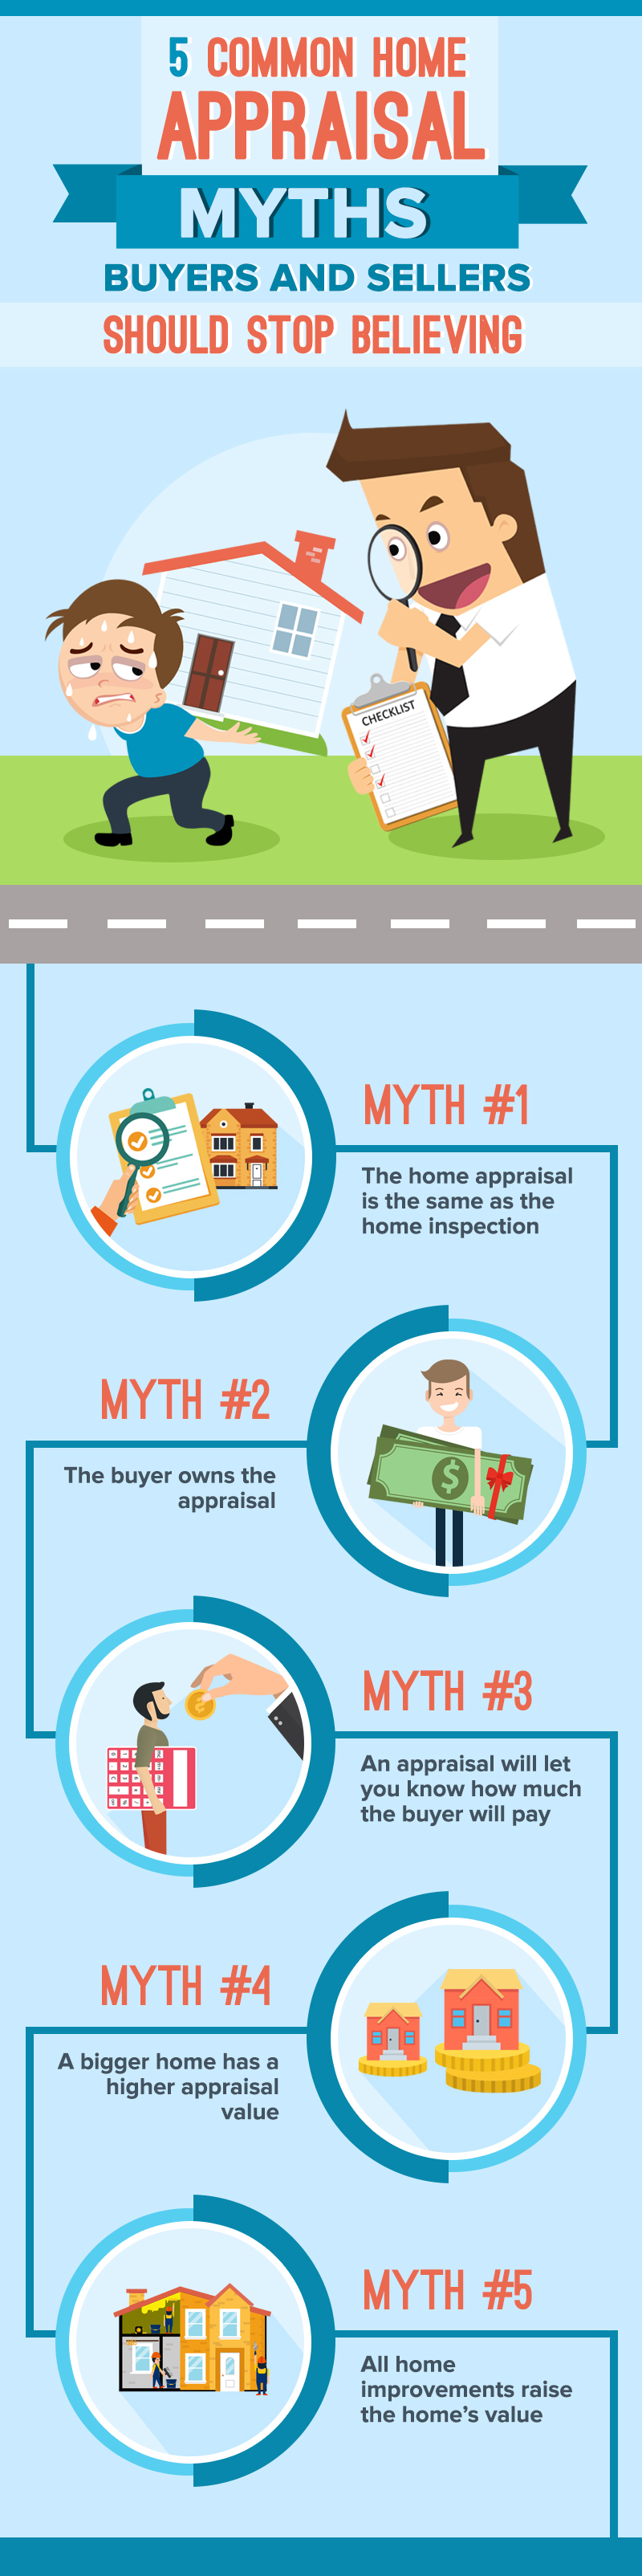 Home Appraisals 101: Common Myths Buyers and Sellers Should Stop Believing